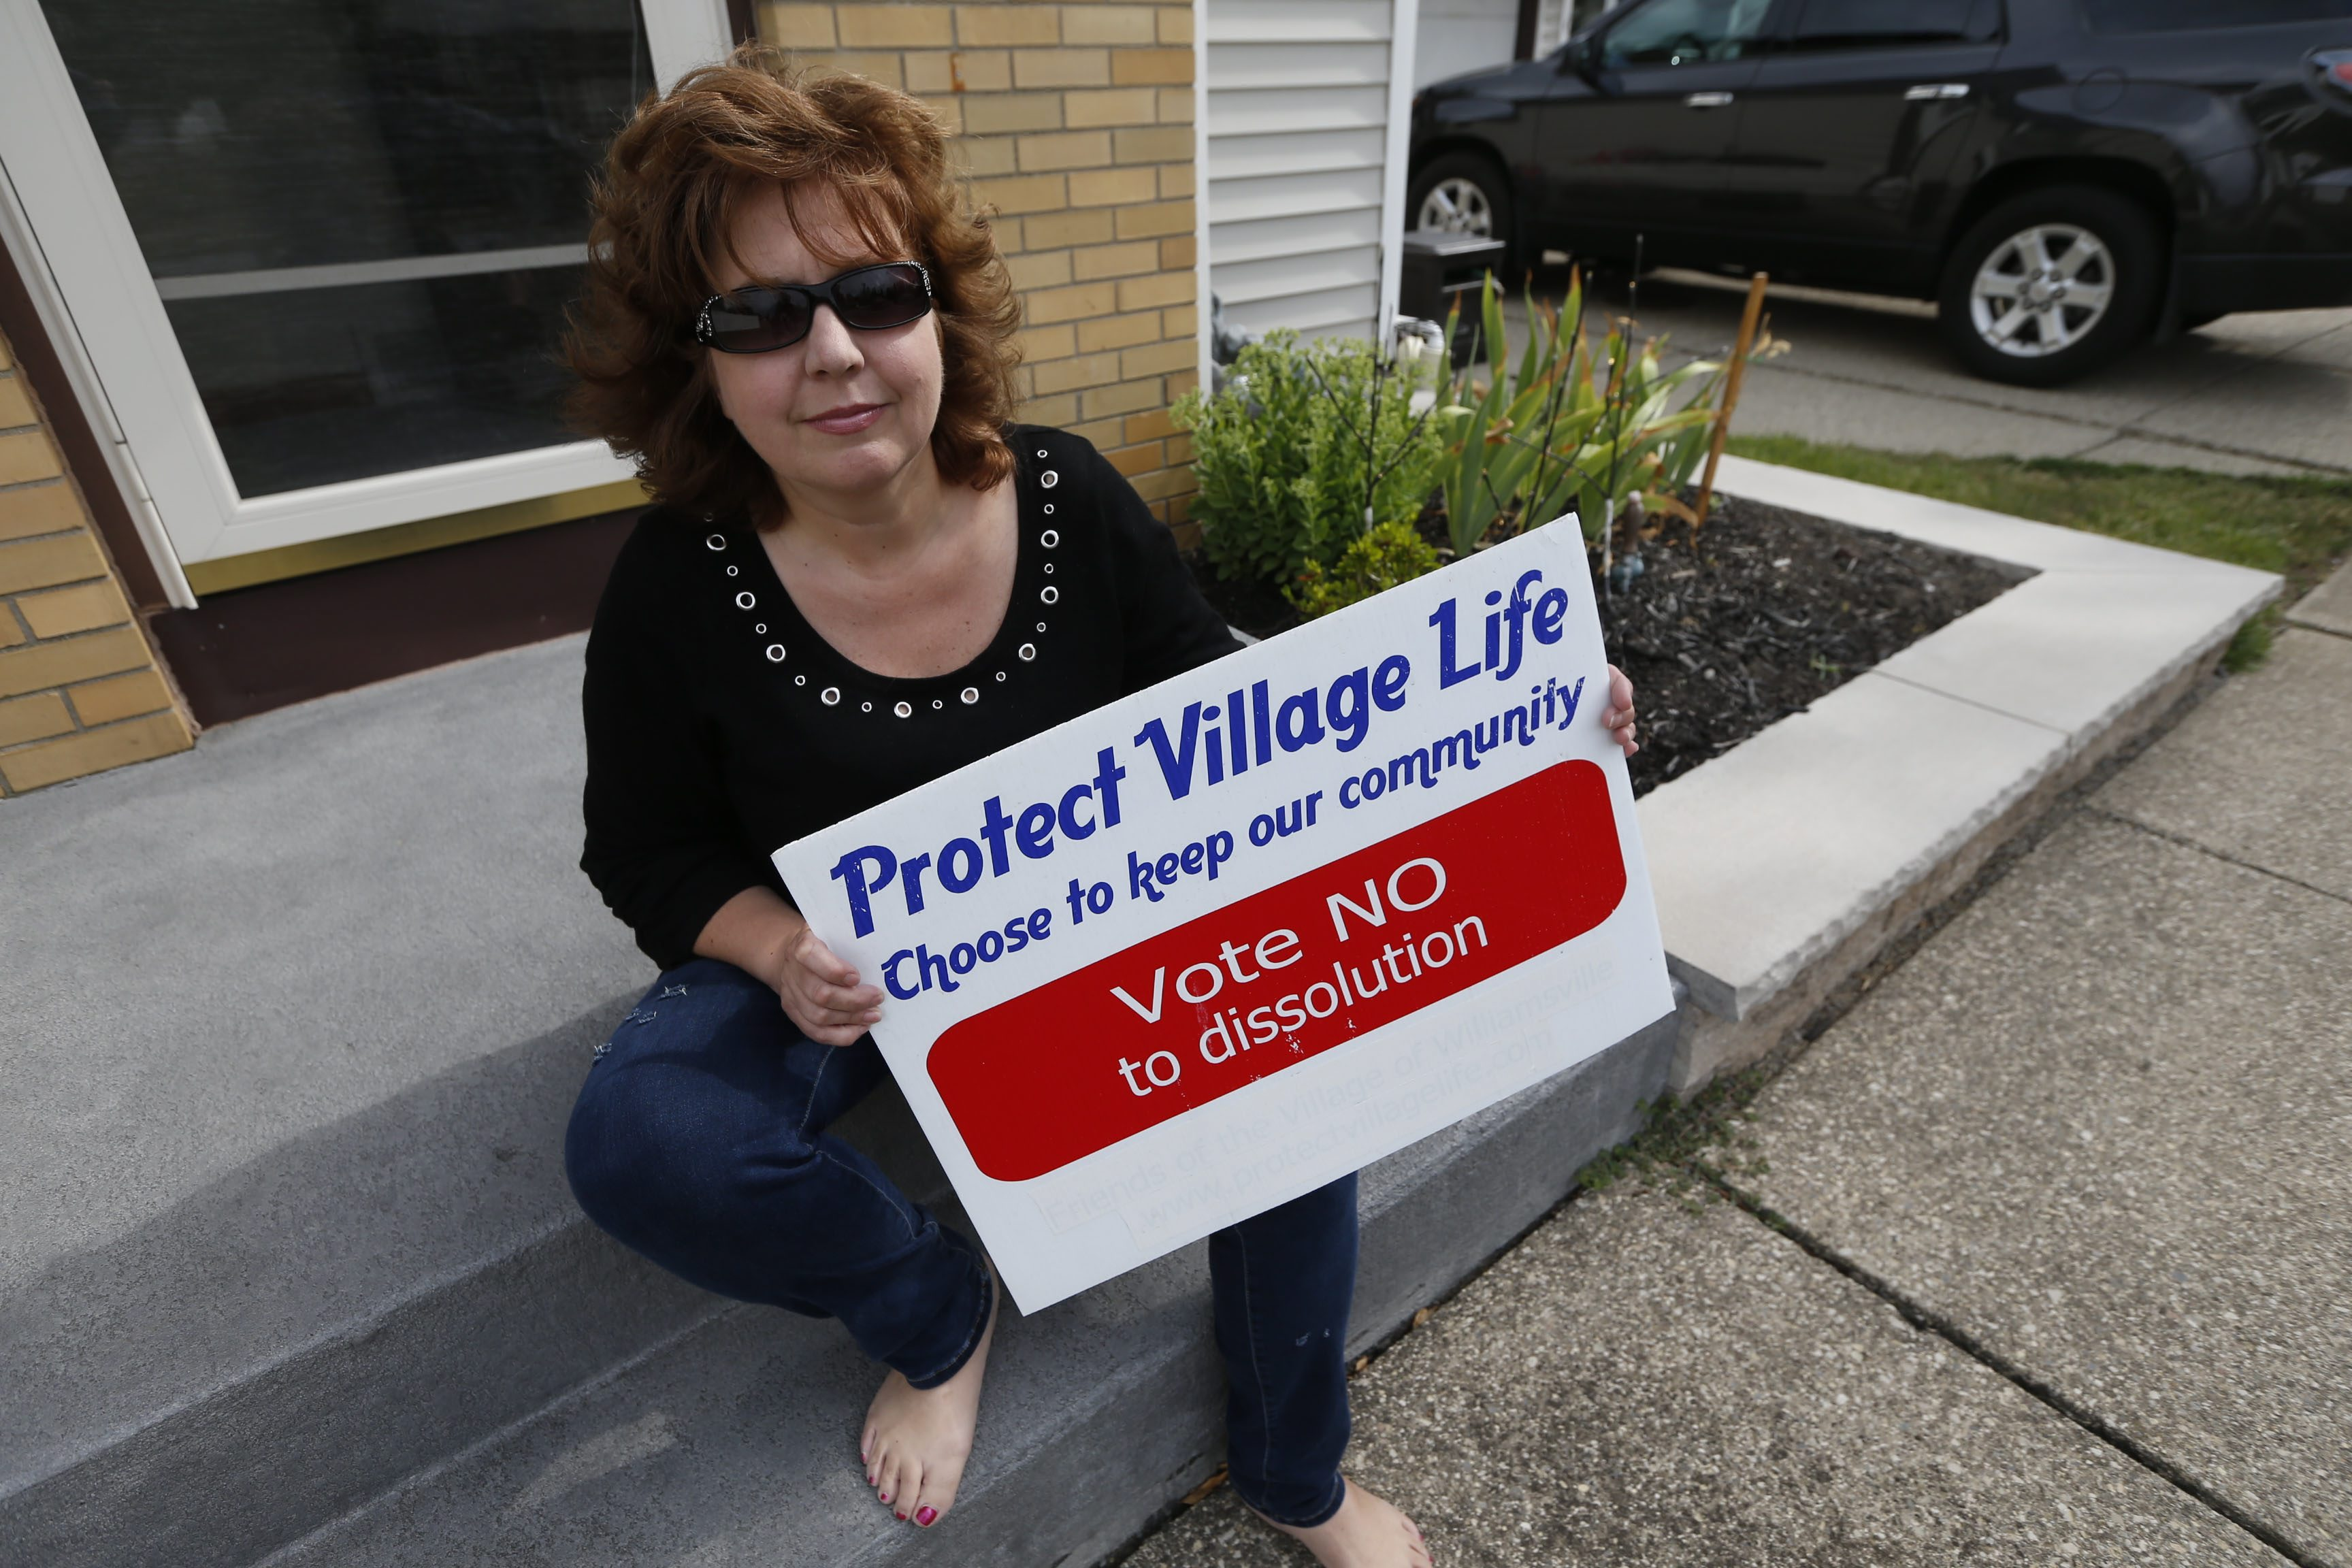 Leigh Ann Wacht is spearheading a citizens grassroots group called VOTE, which is fighting dissolution of the Village of Depew. (Robert Kirkham/Buffalo News)